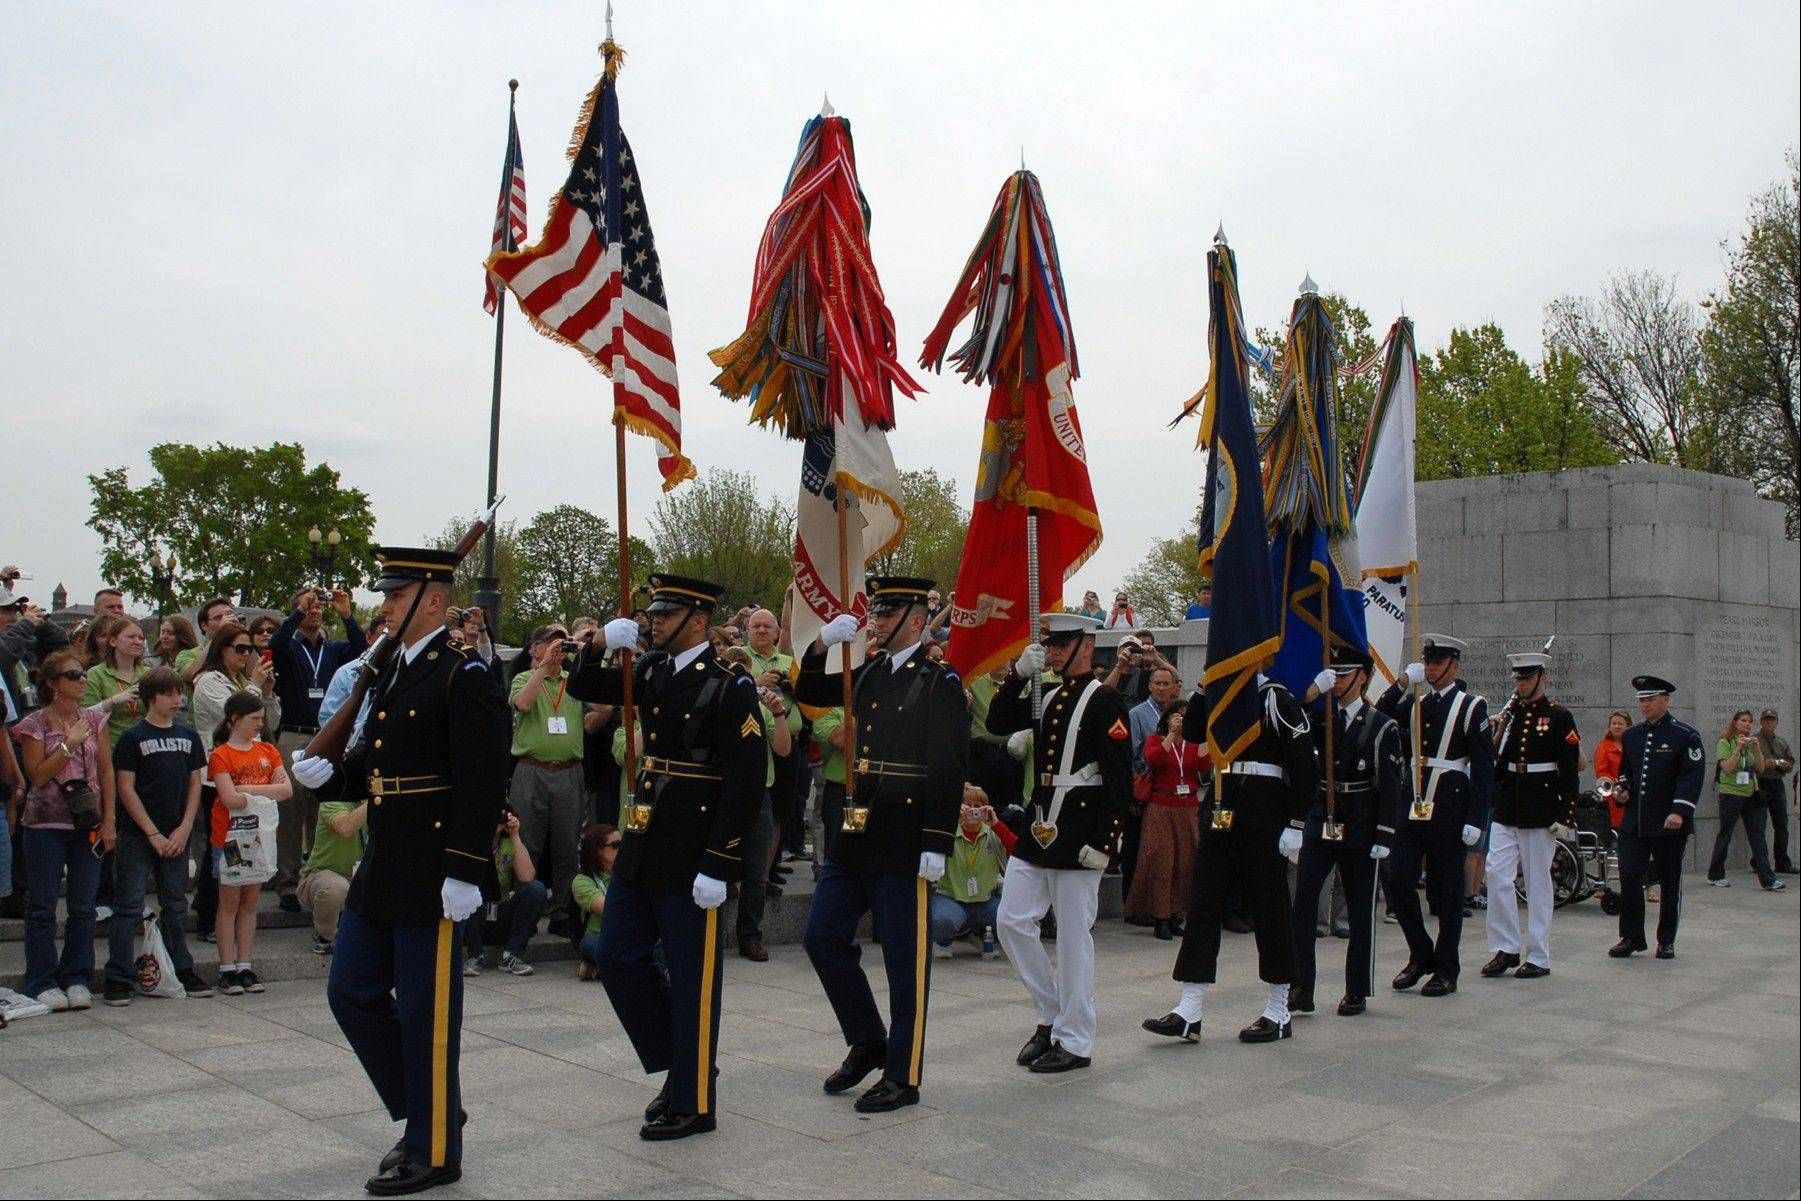 The Honor Flight Chicago trip includes a visit to the World War II Memorial in Washington, D.C., where veterans and visitors see a color guard ceremony.